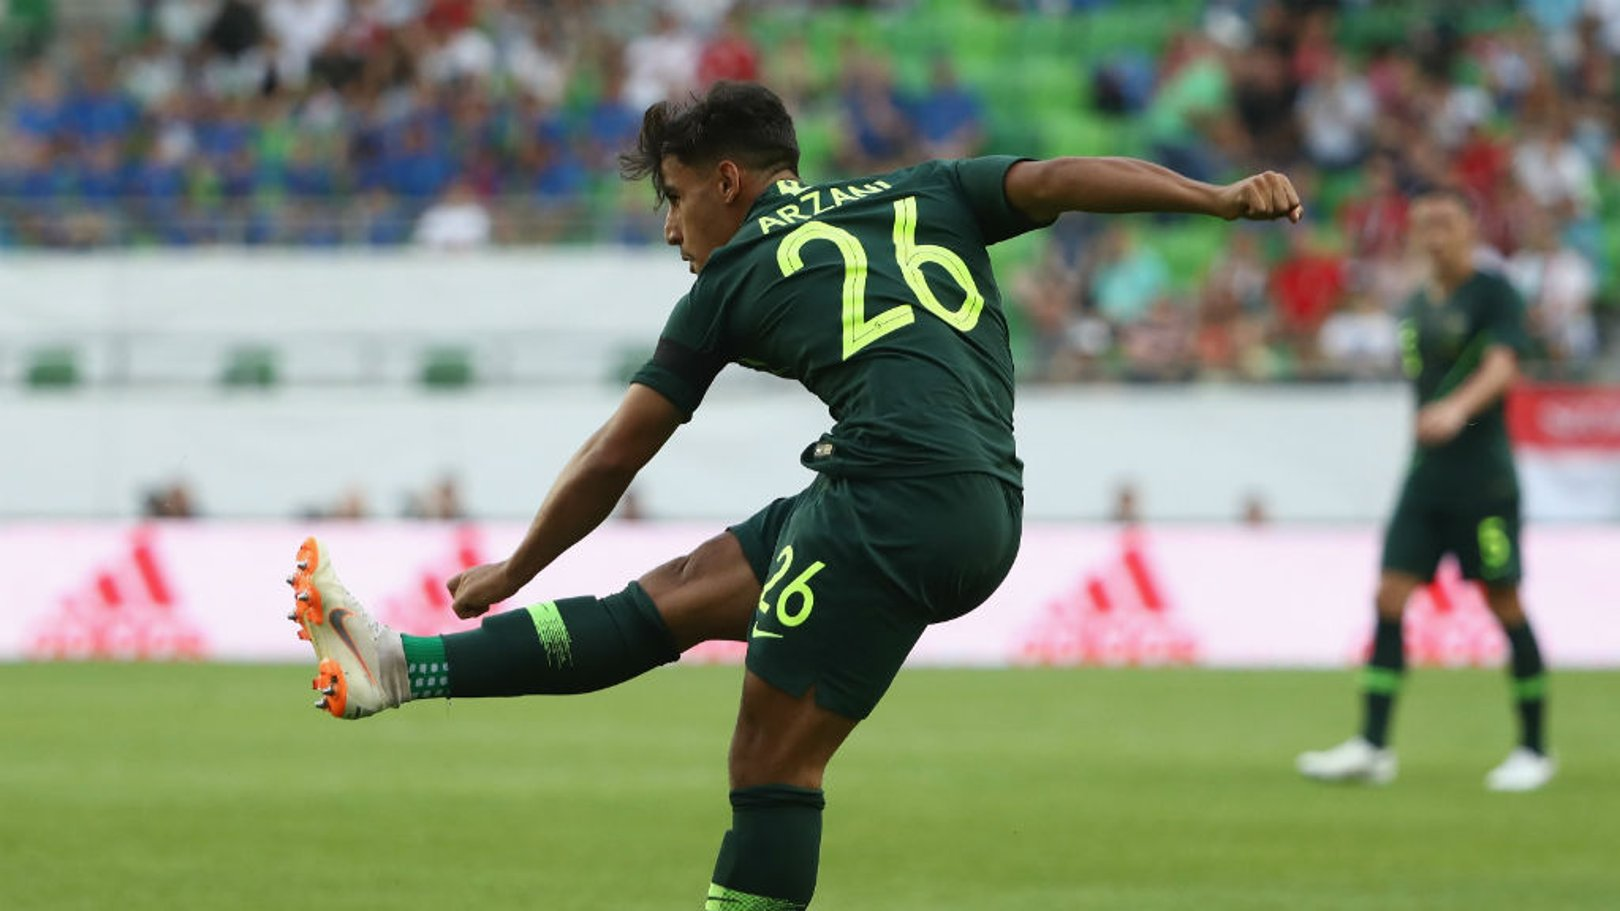 TRANSFER: City are delighted to announce the signing of Daniel Arzani from Melbourne City FC.